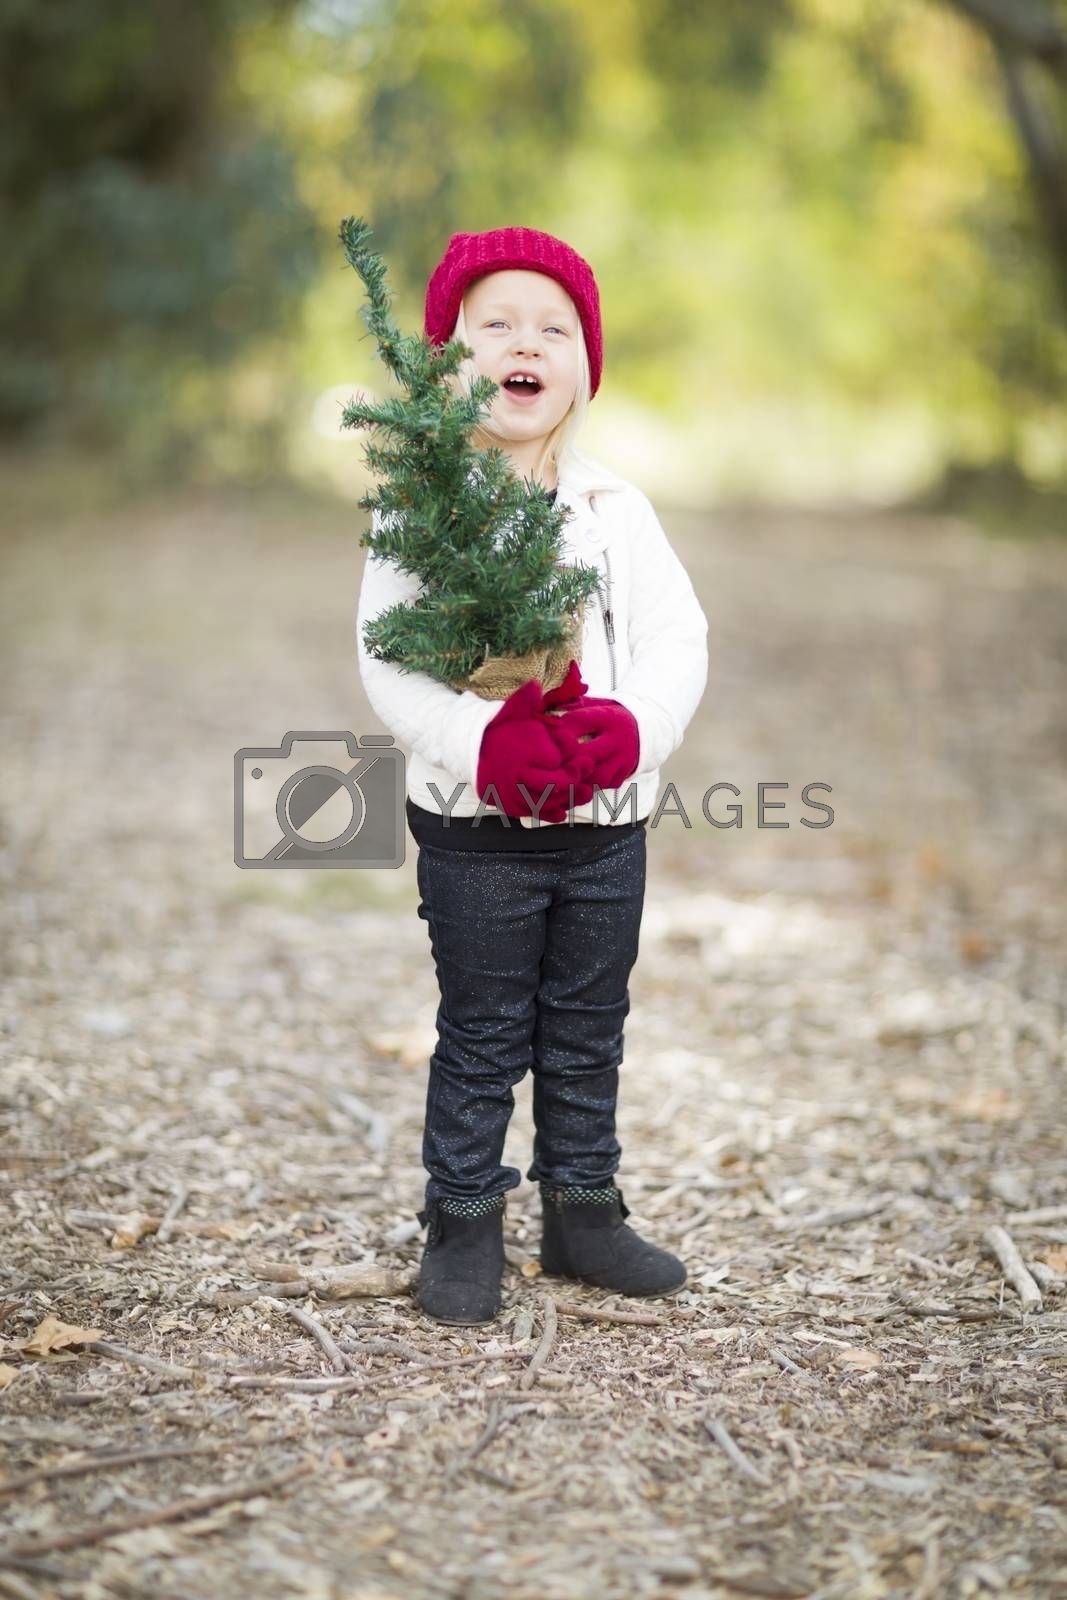 Baby Girl In Red Mittens and Cap Holding Small Christmas Tree Outdoors.